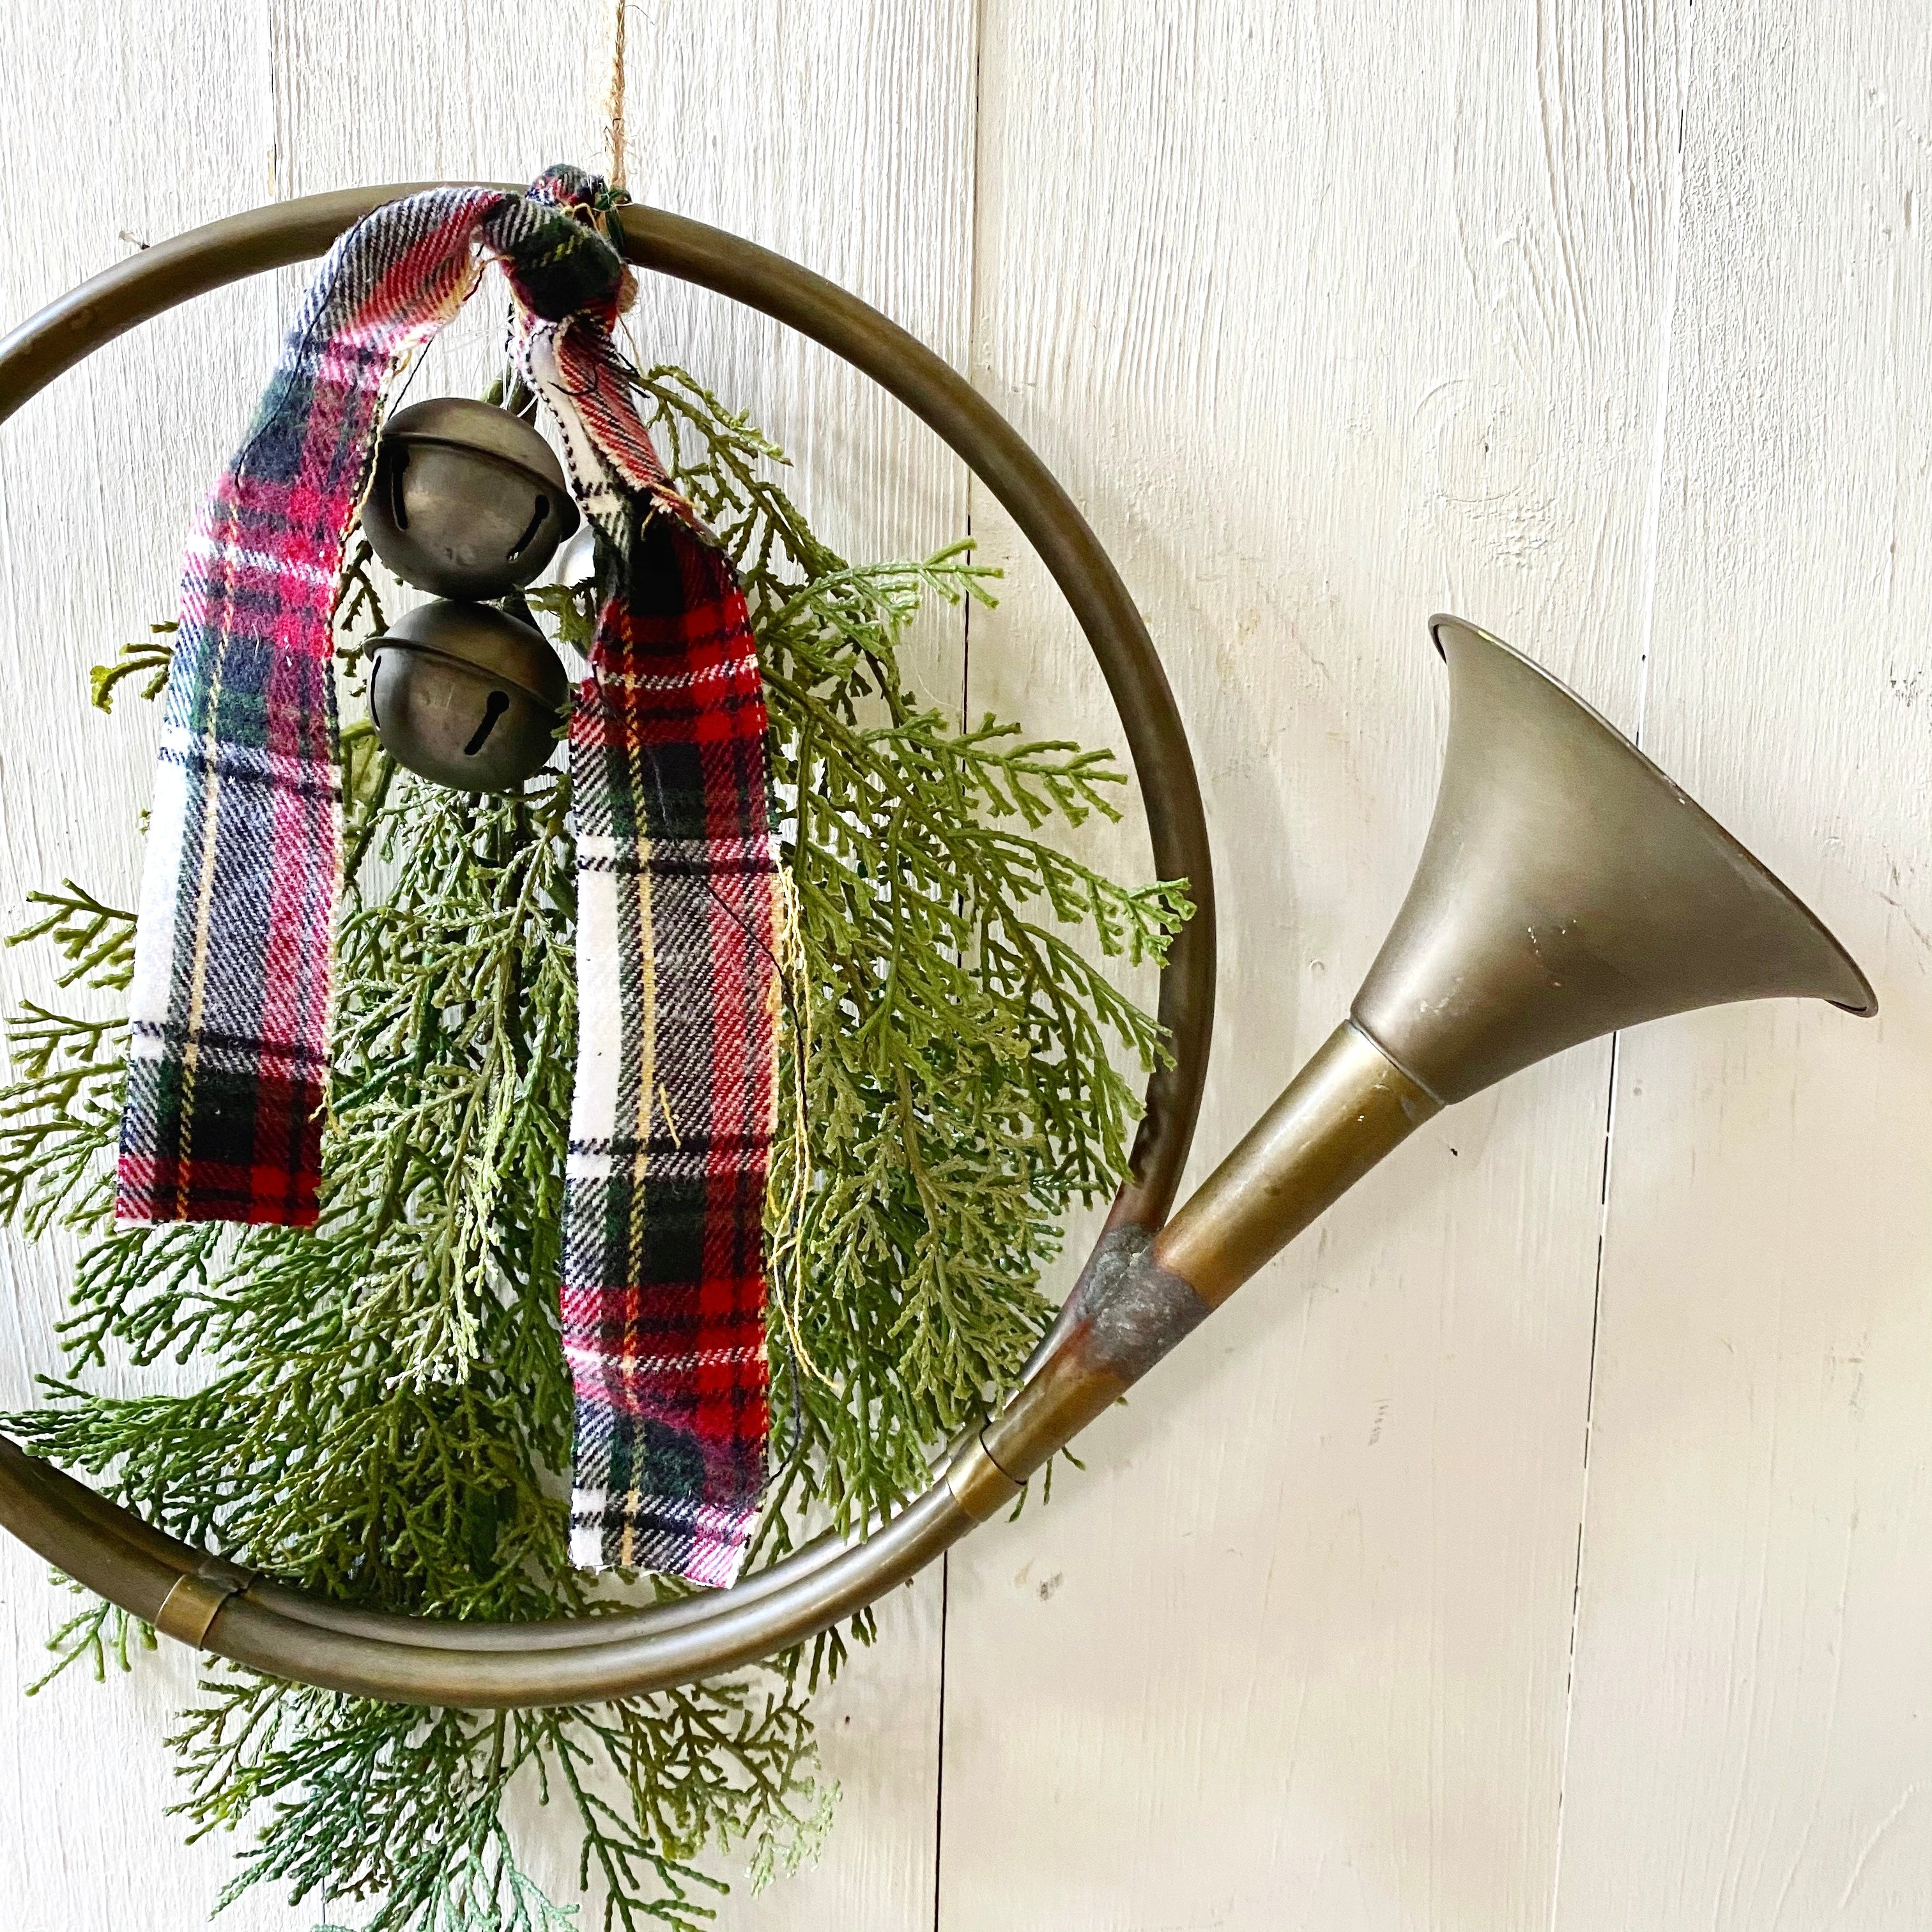 VINTAGE FRENCH HORN WITH HOLIDAY GREENS